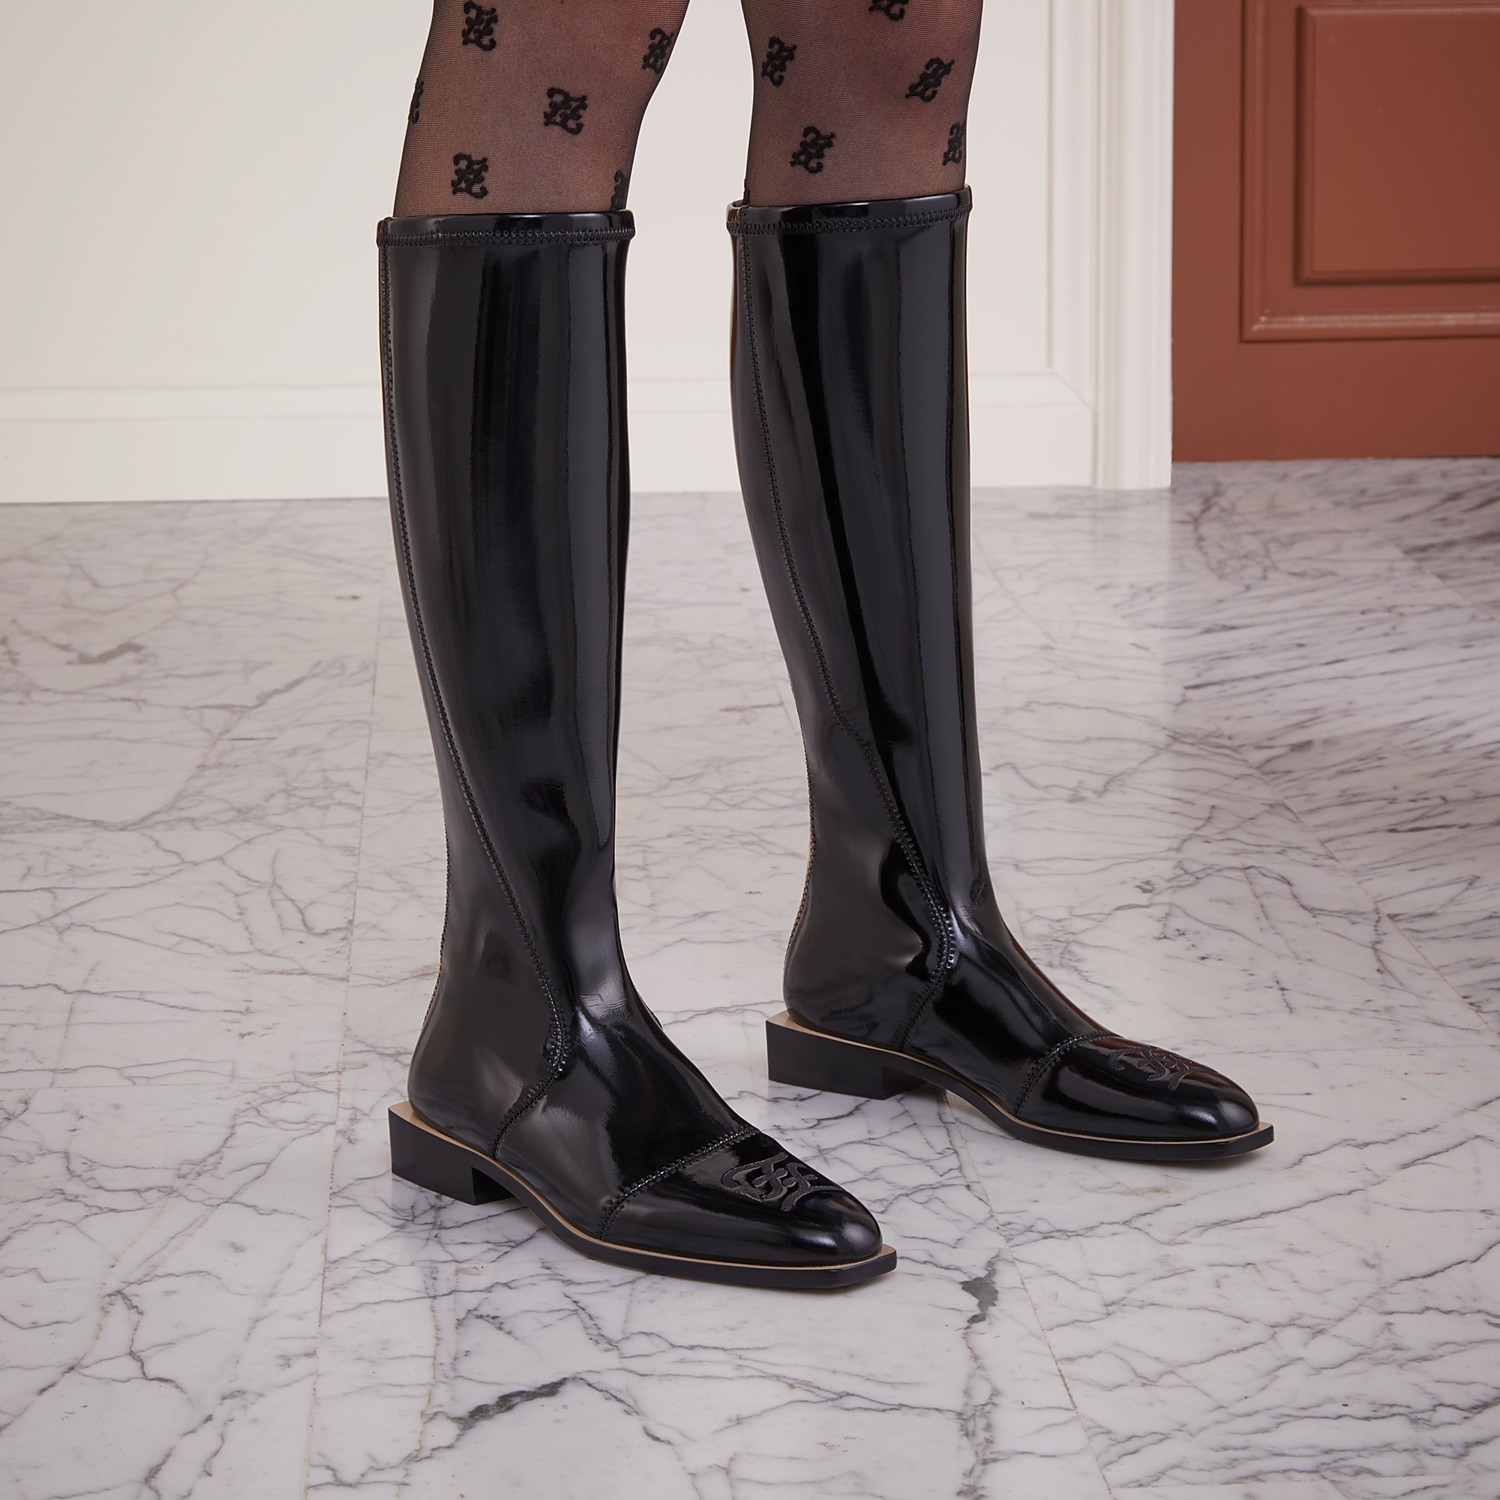 FENDI BOOTS - Glossy black neoprene boots - view 5 detail